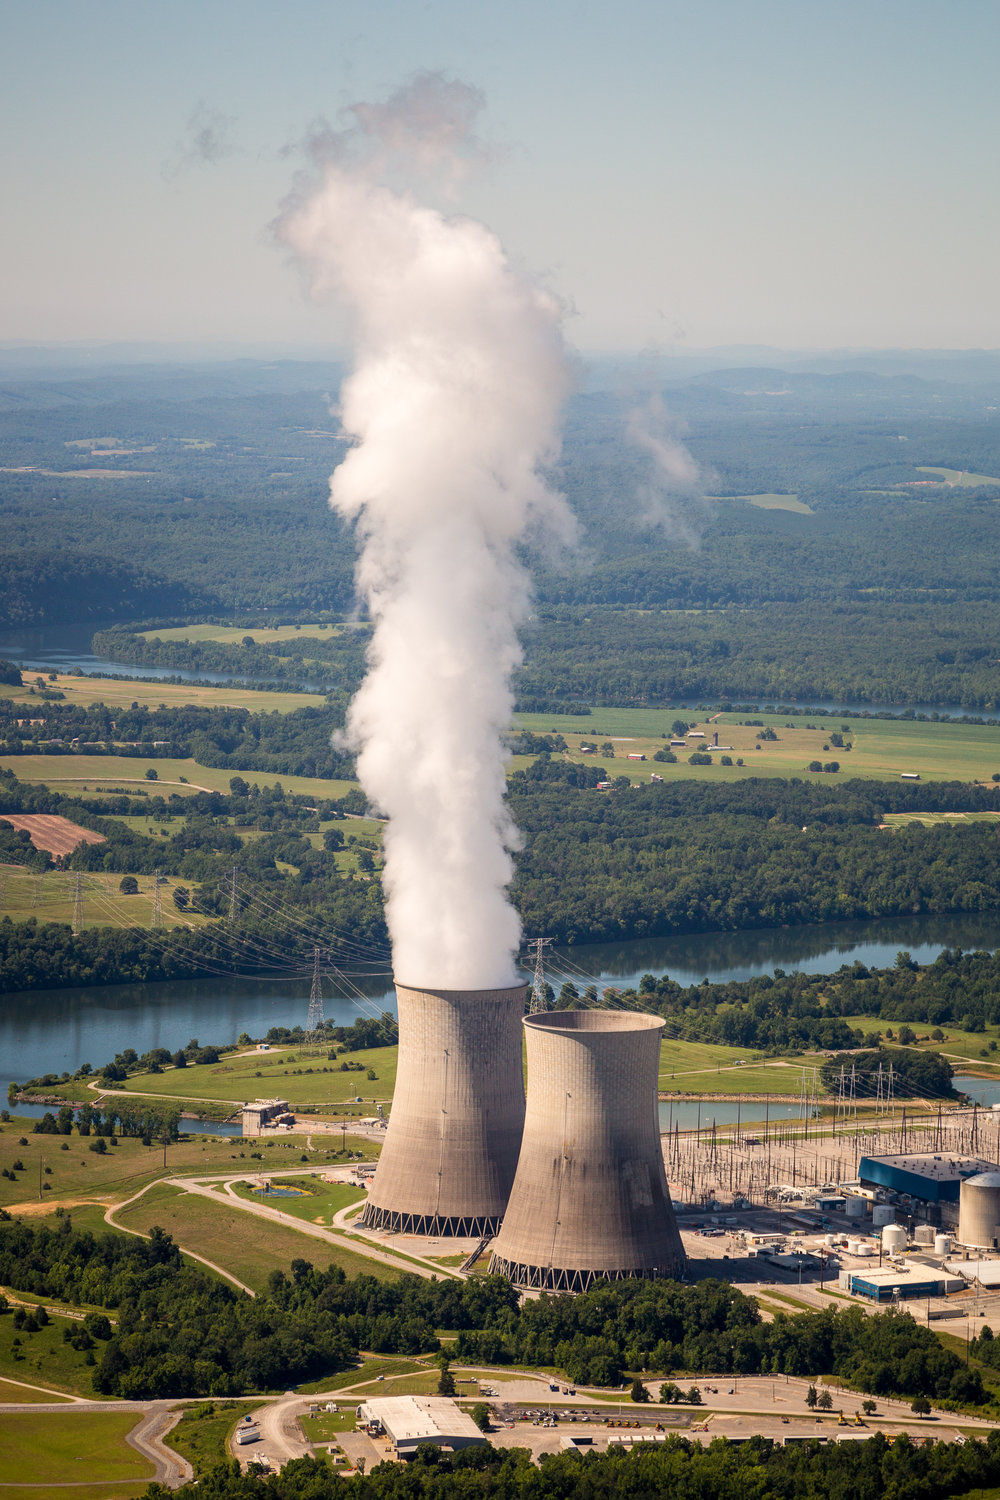 Watts Bar Nuclear Plant, Rhea County, Tennessee.